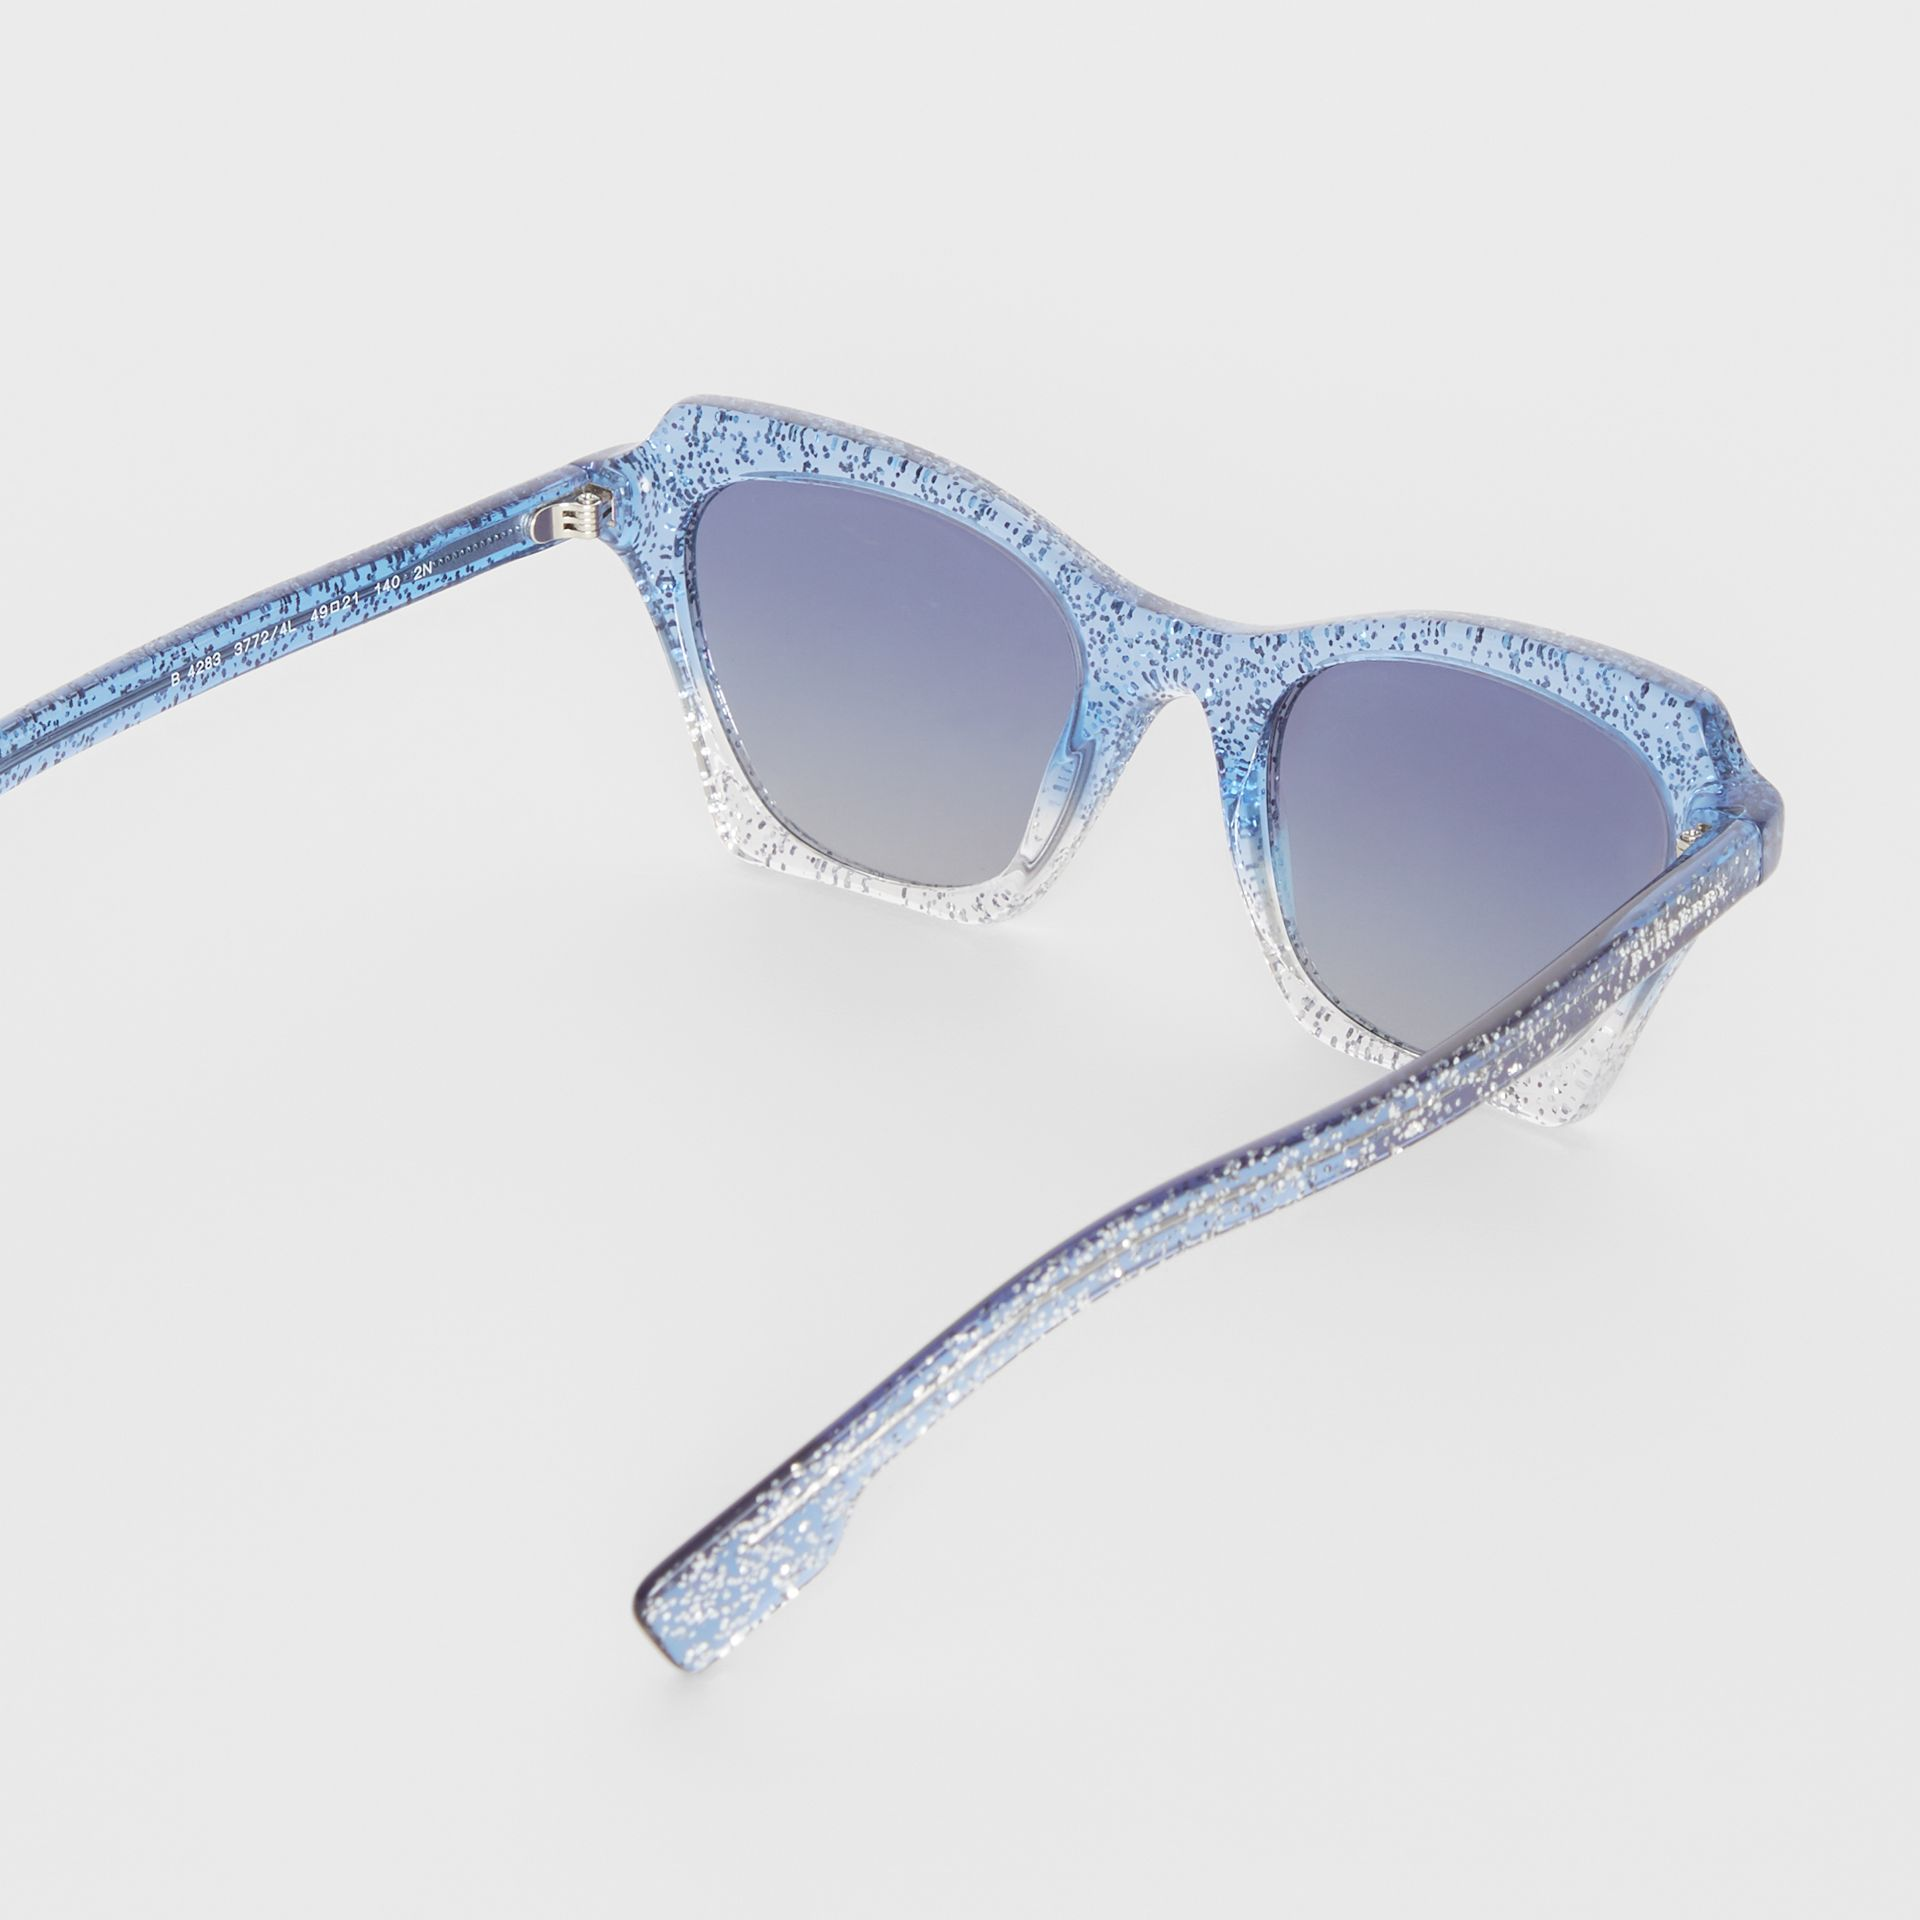 Butterfly Frame Sunglasses in Blue - Women | Burberry Australia - gallery image 4